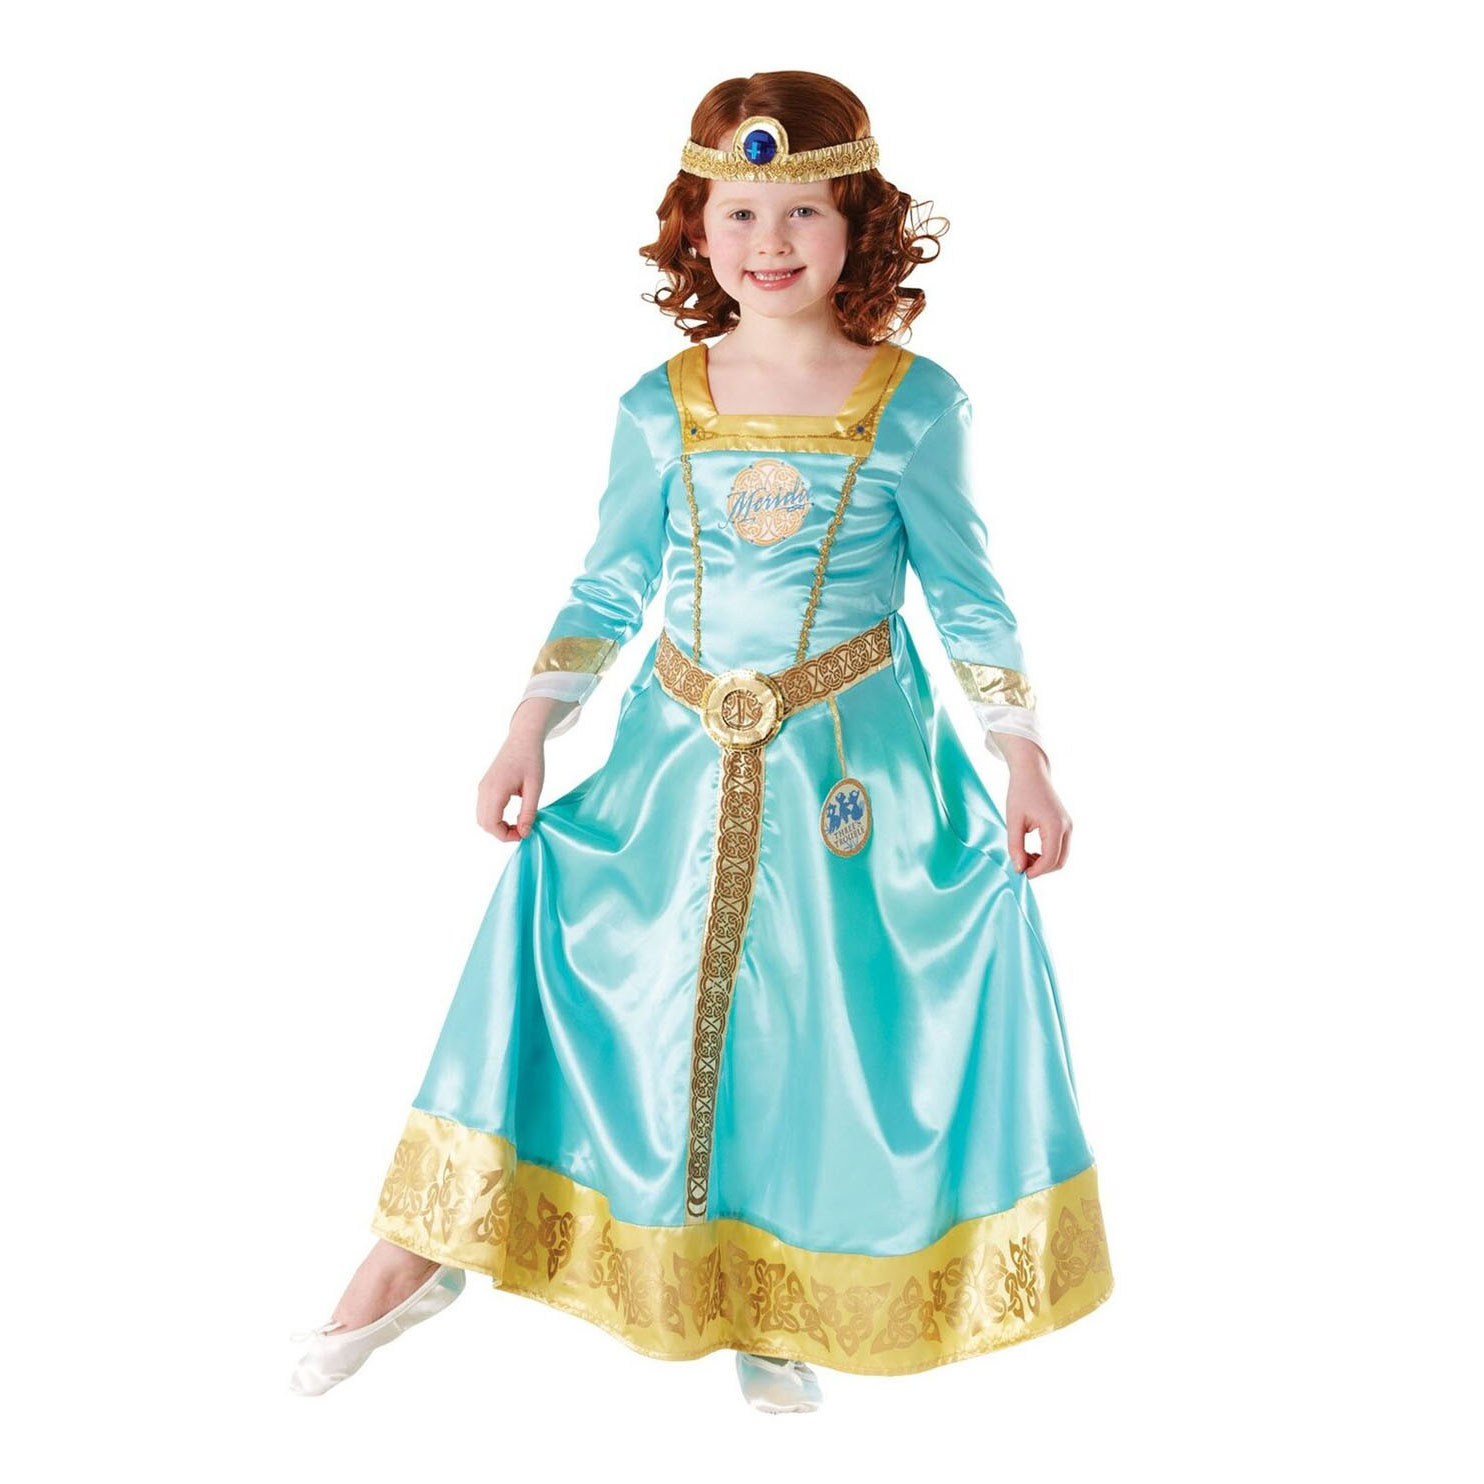 Kinderkostuum Disney Prinses Merida, 3-4 jaar